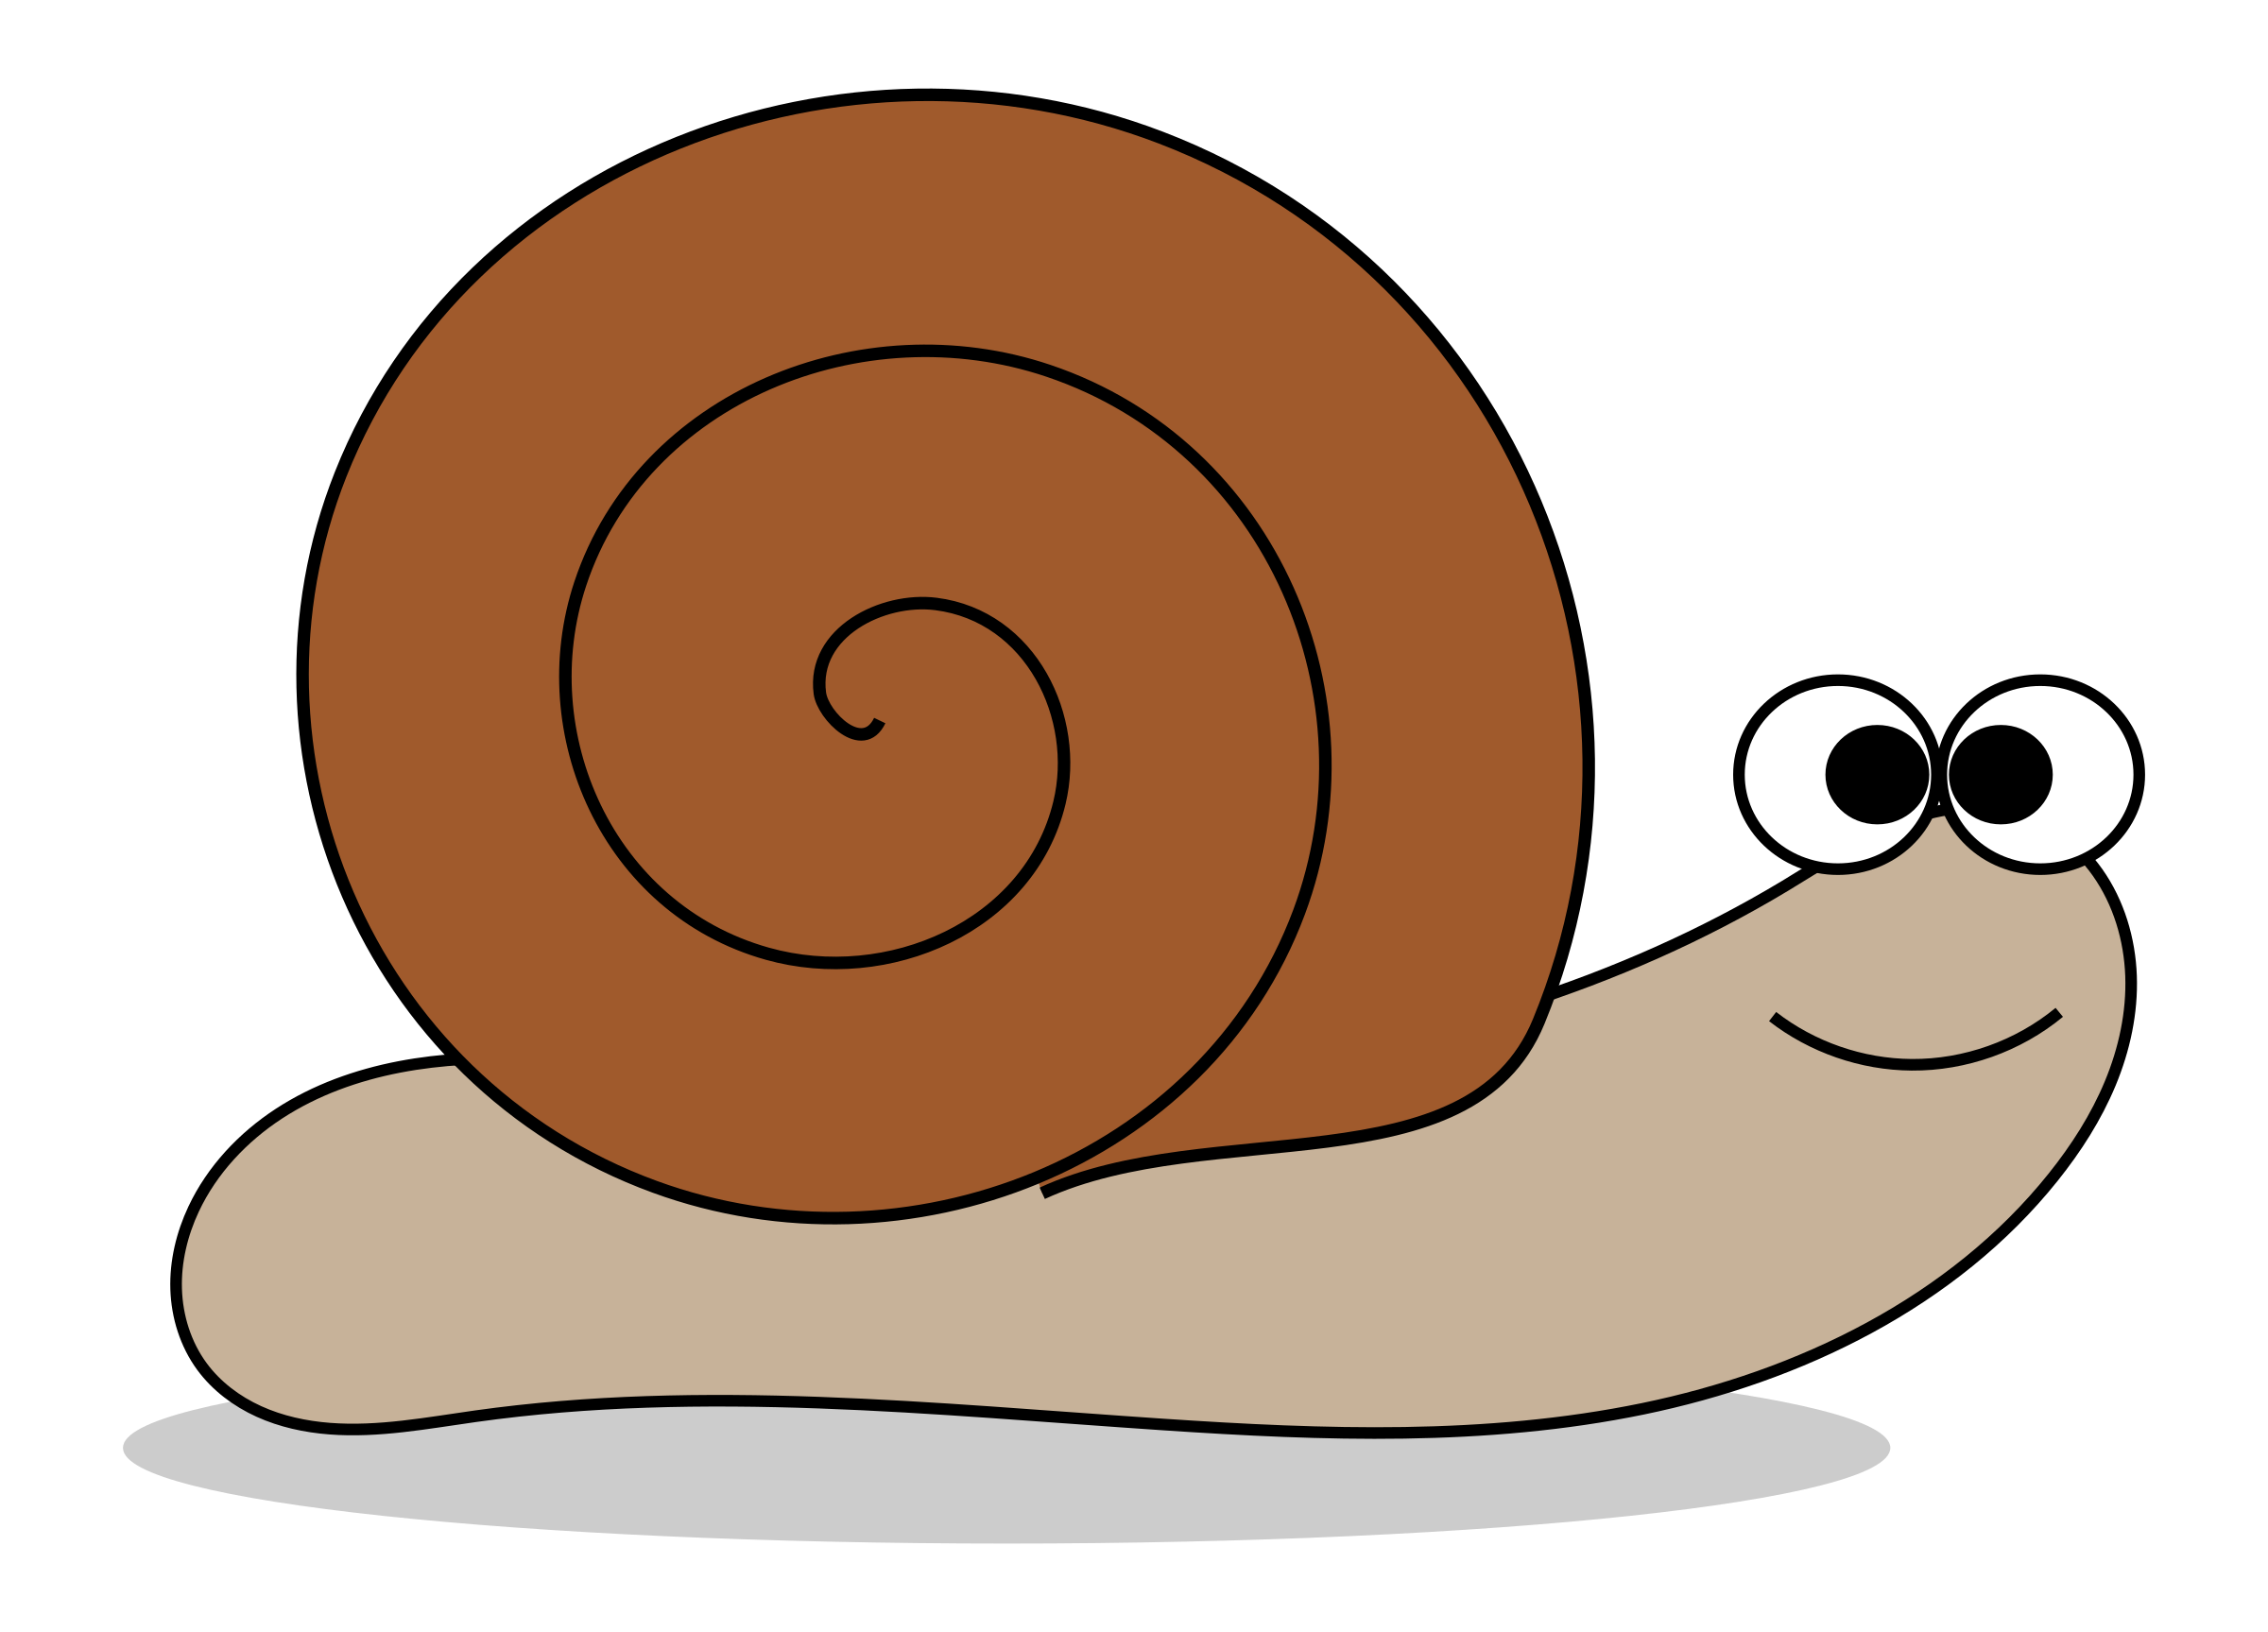 Free Snail Clipart 2018, Download Free Clip Art, Free Clip.